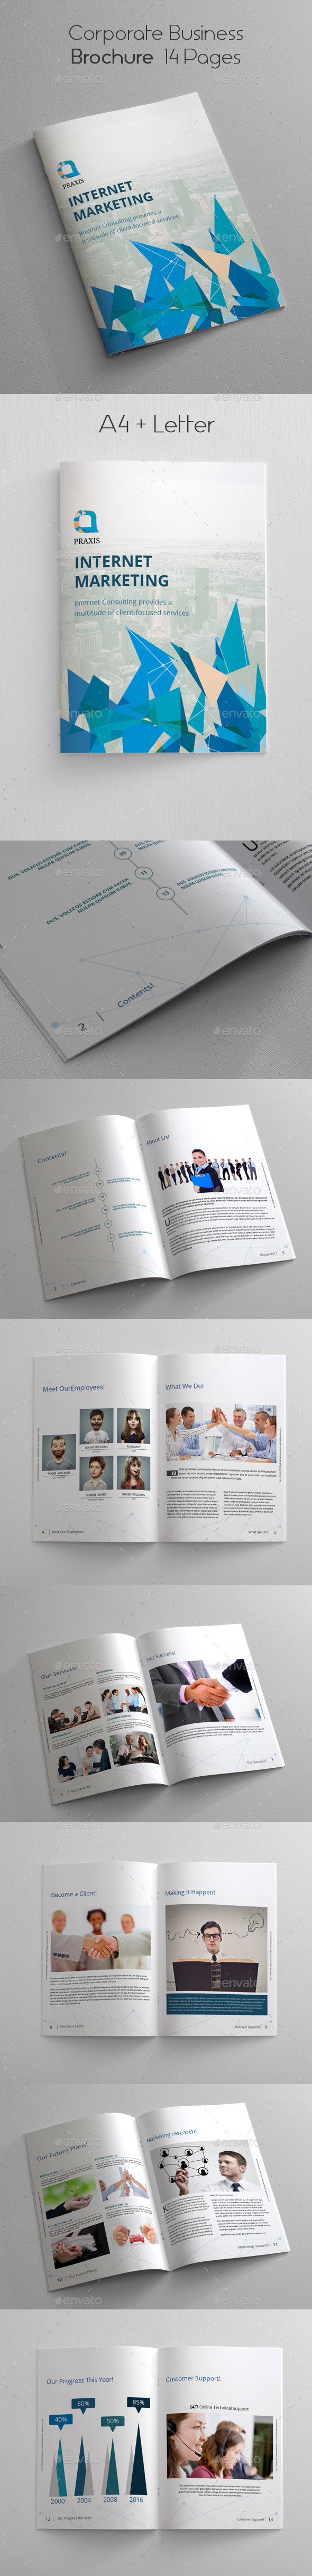 Corporate Business Brochure 14 Pages - Corporate Flyers